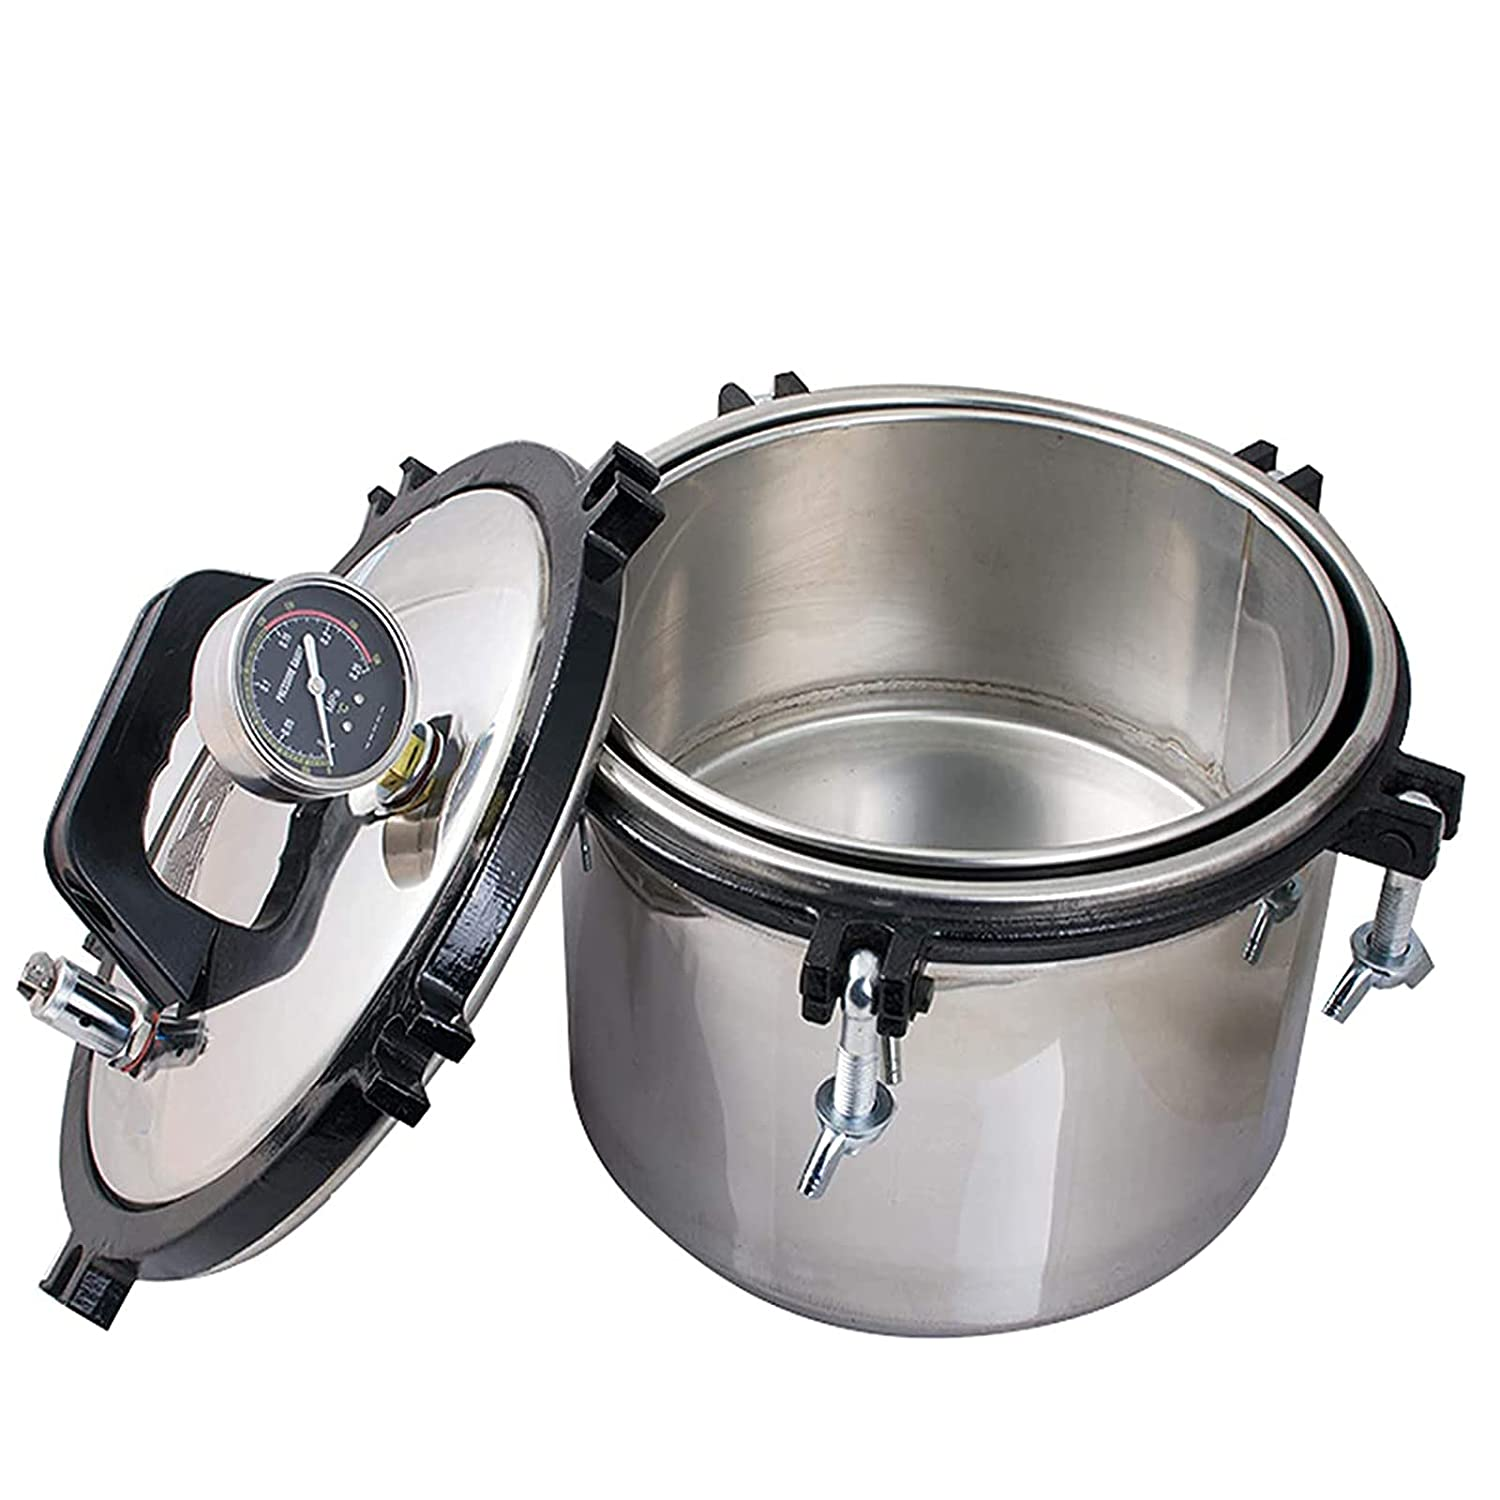 Pevor 2.1 Gallon Steam Autoclave Machine Coal Ranking TOP10 Electric Opening large release sale and - Hea